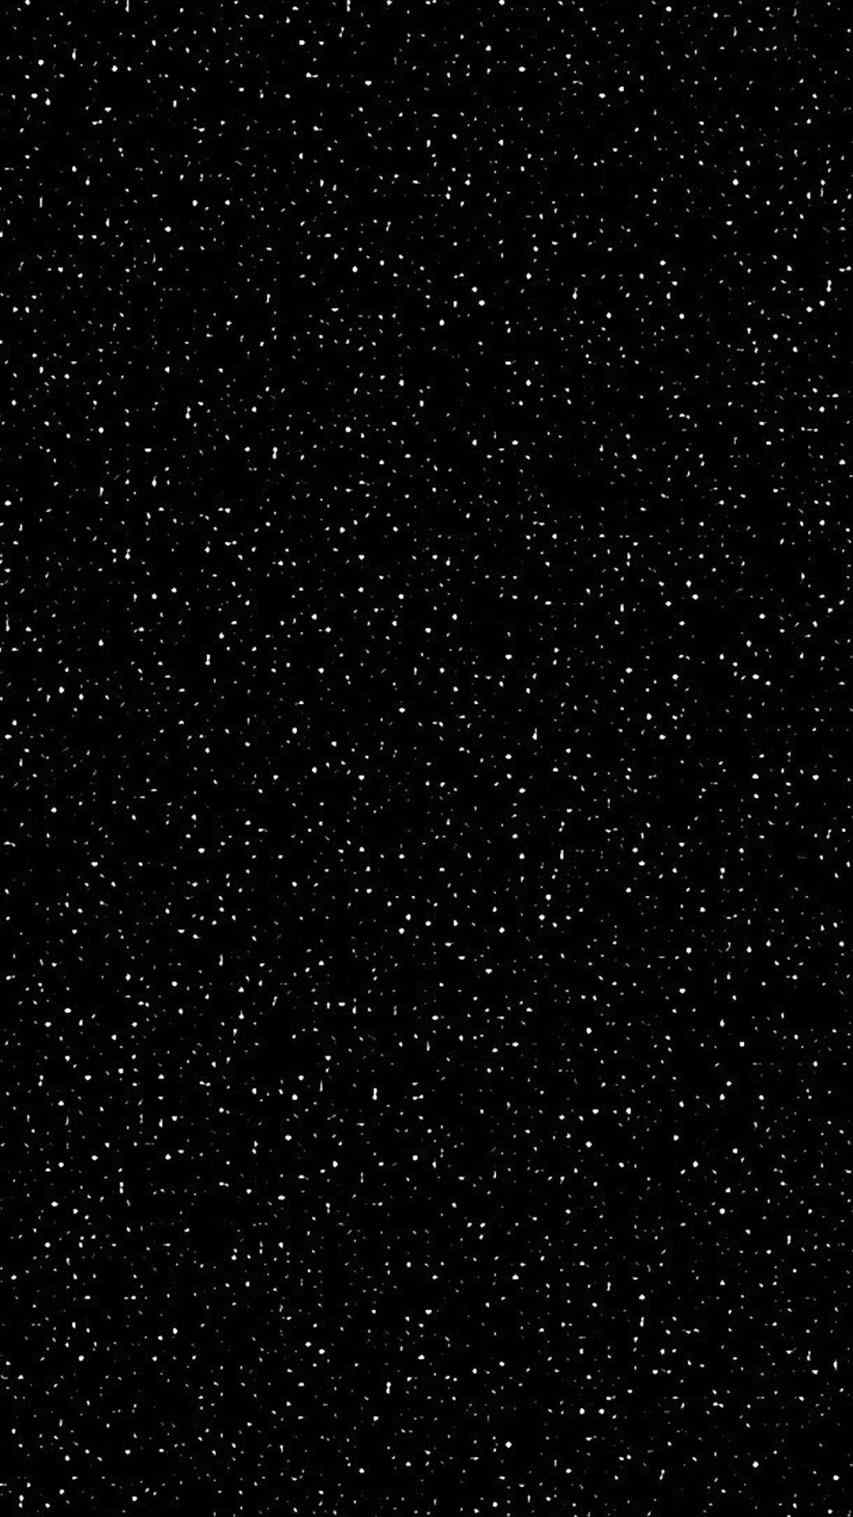 Star Aesthetic Wallpaper : aesthetic, wallpaper, Stars, Aesthetic, Wallpapers, Wallpaper